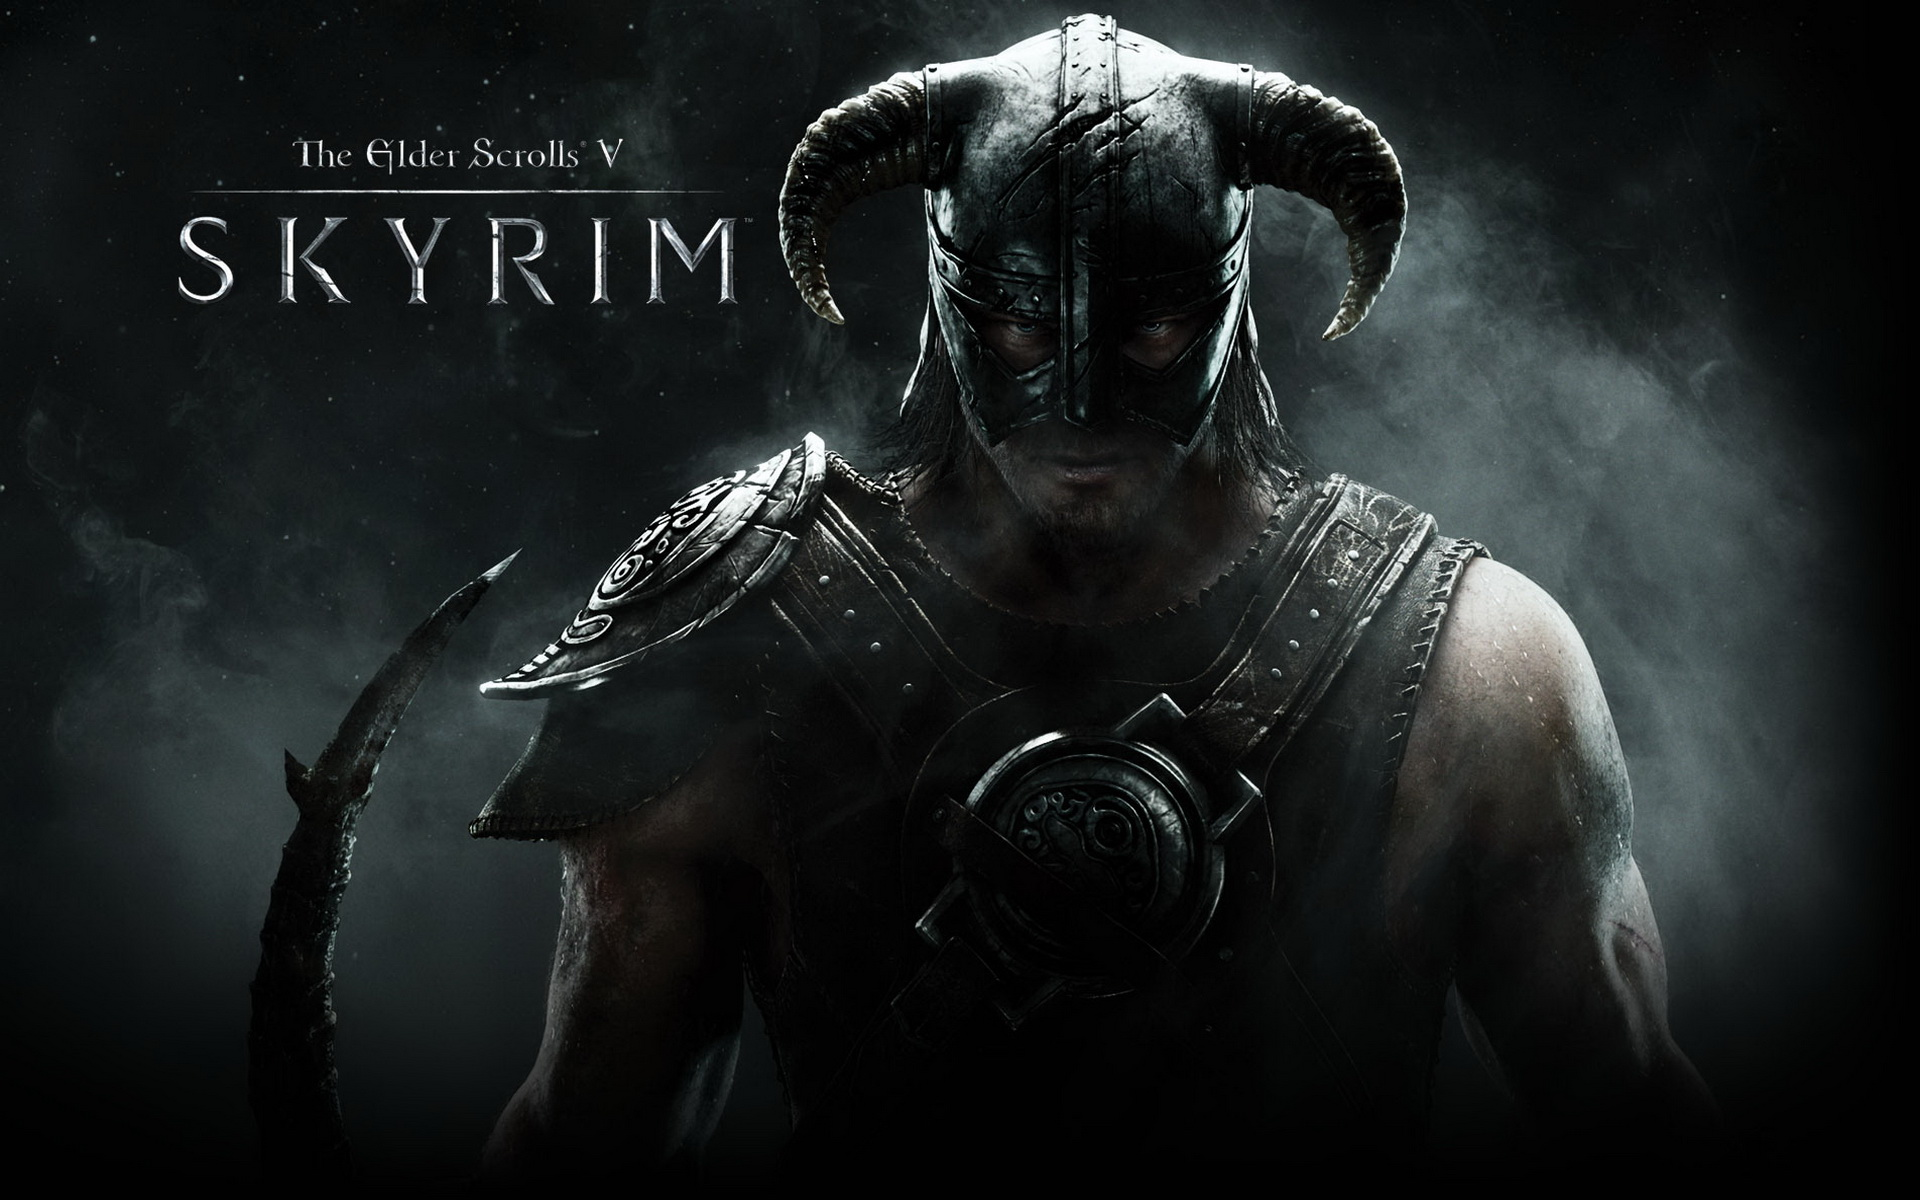 the_elder_scrolls_v_skyrim_banner